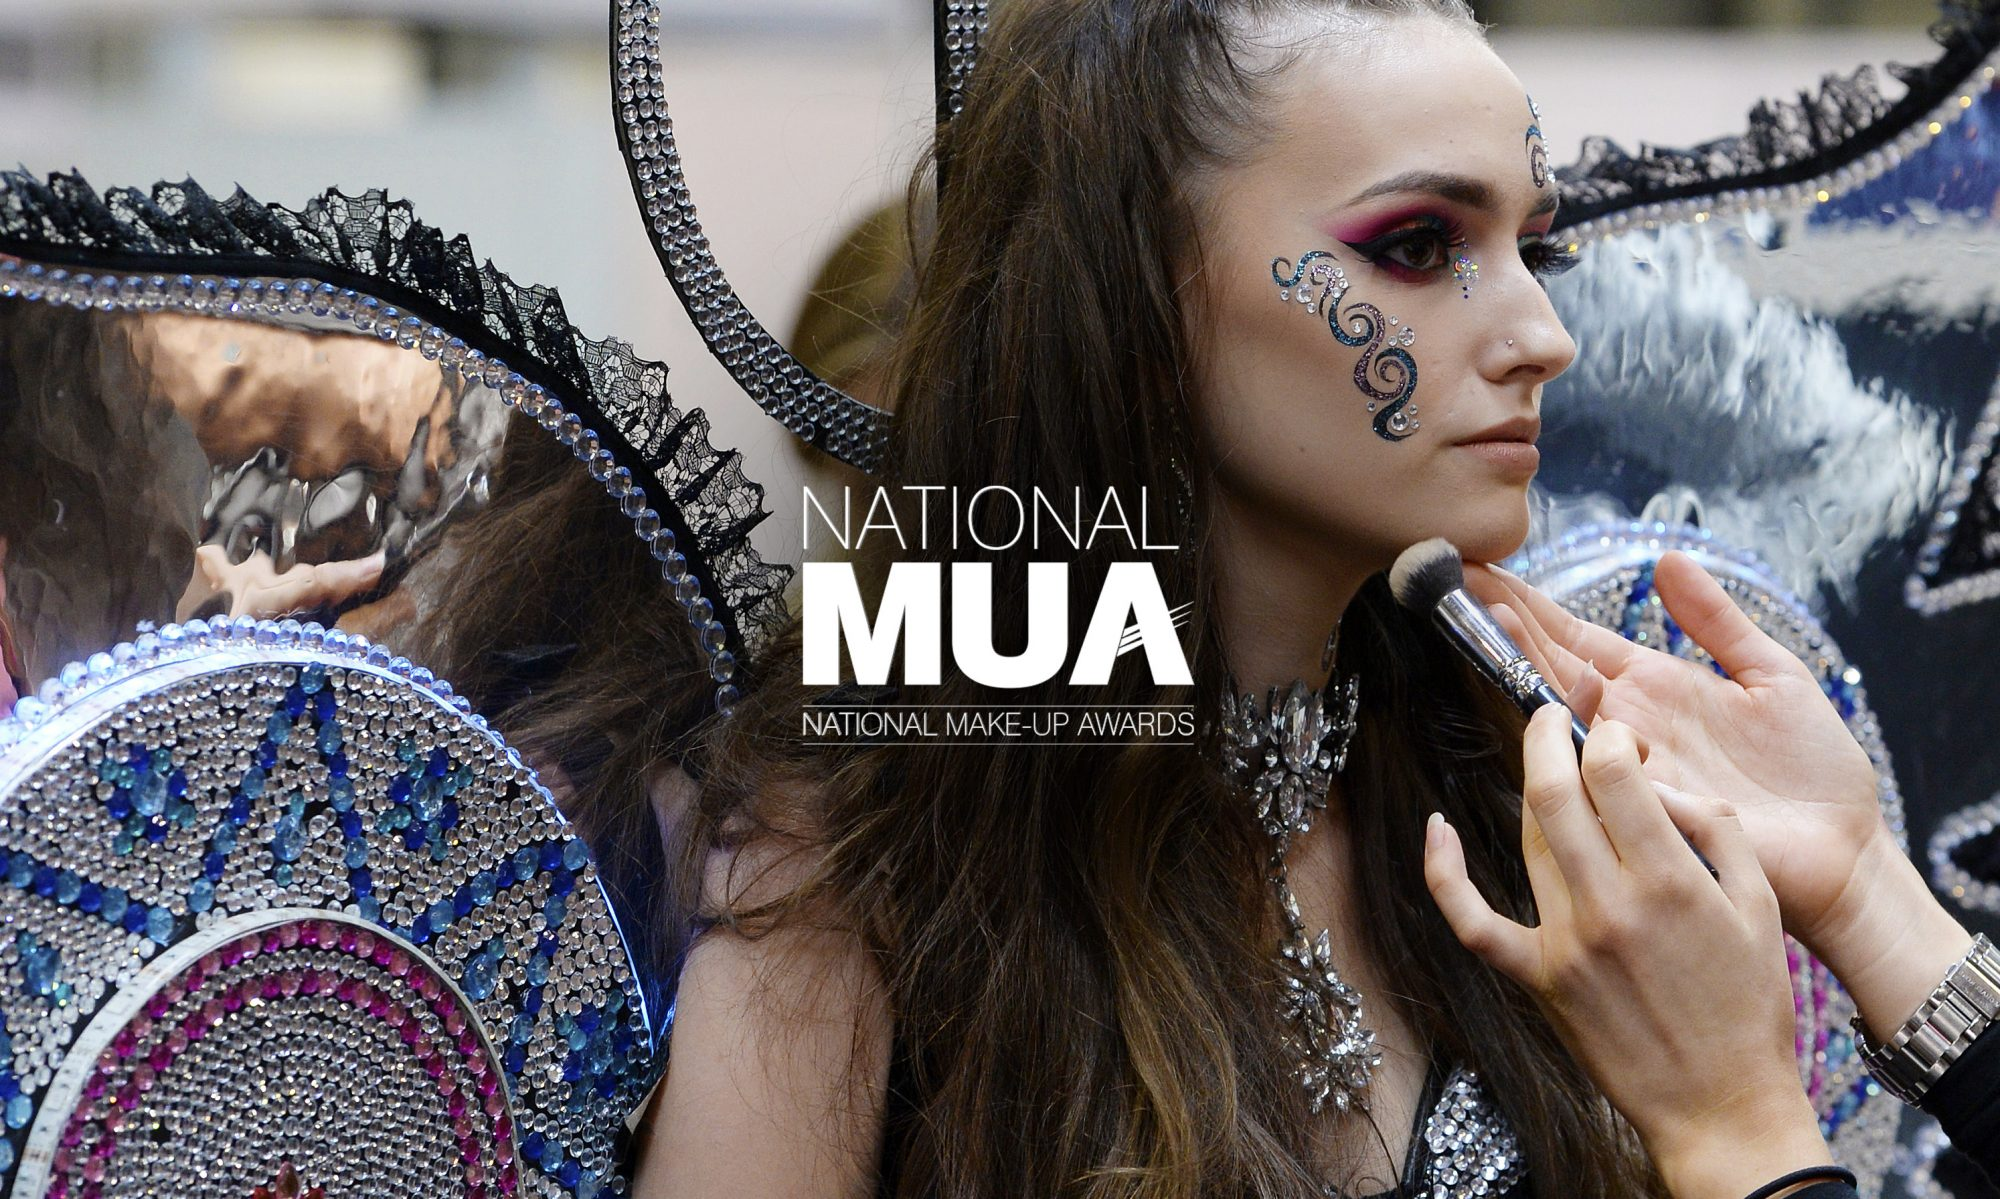 The National Makeup Awards